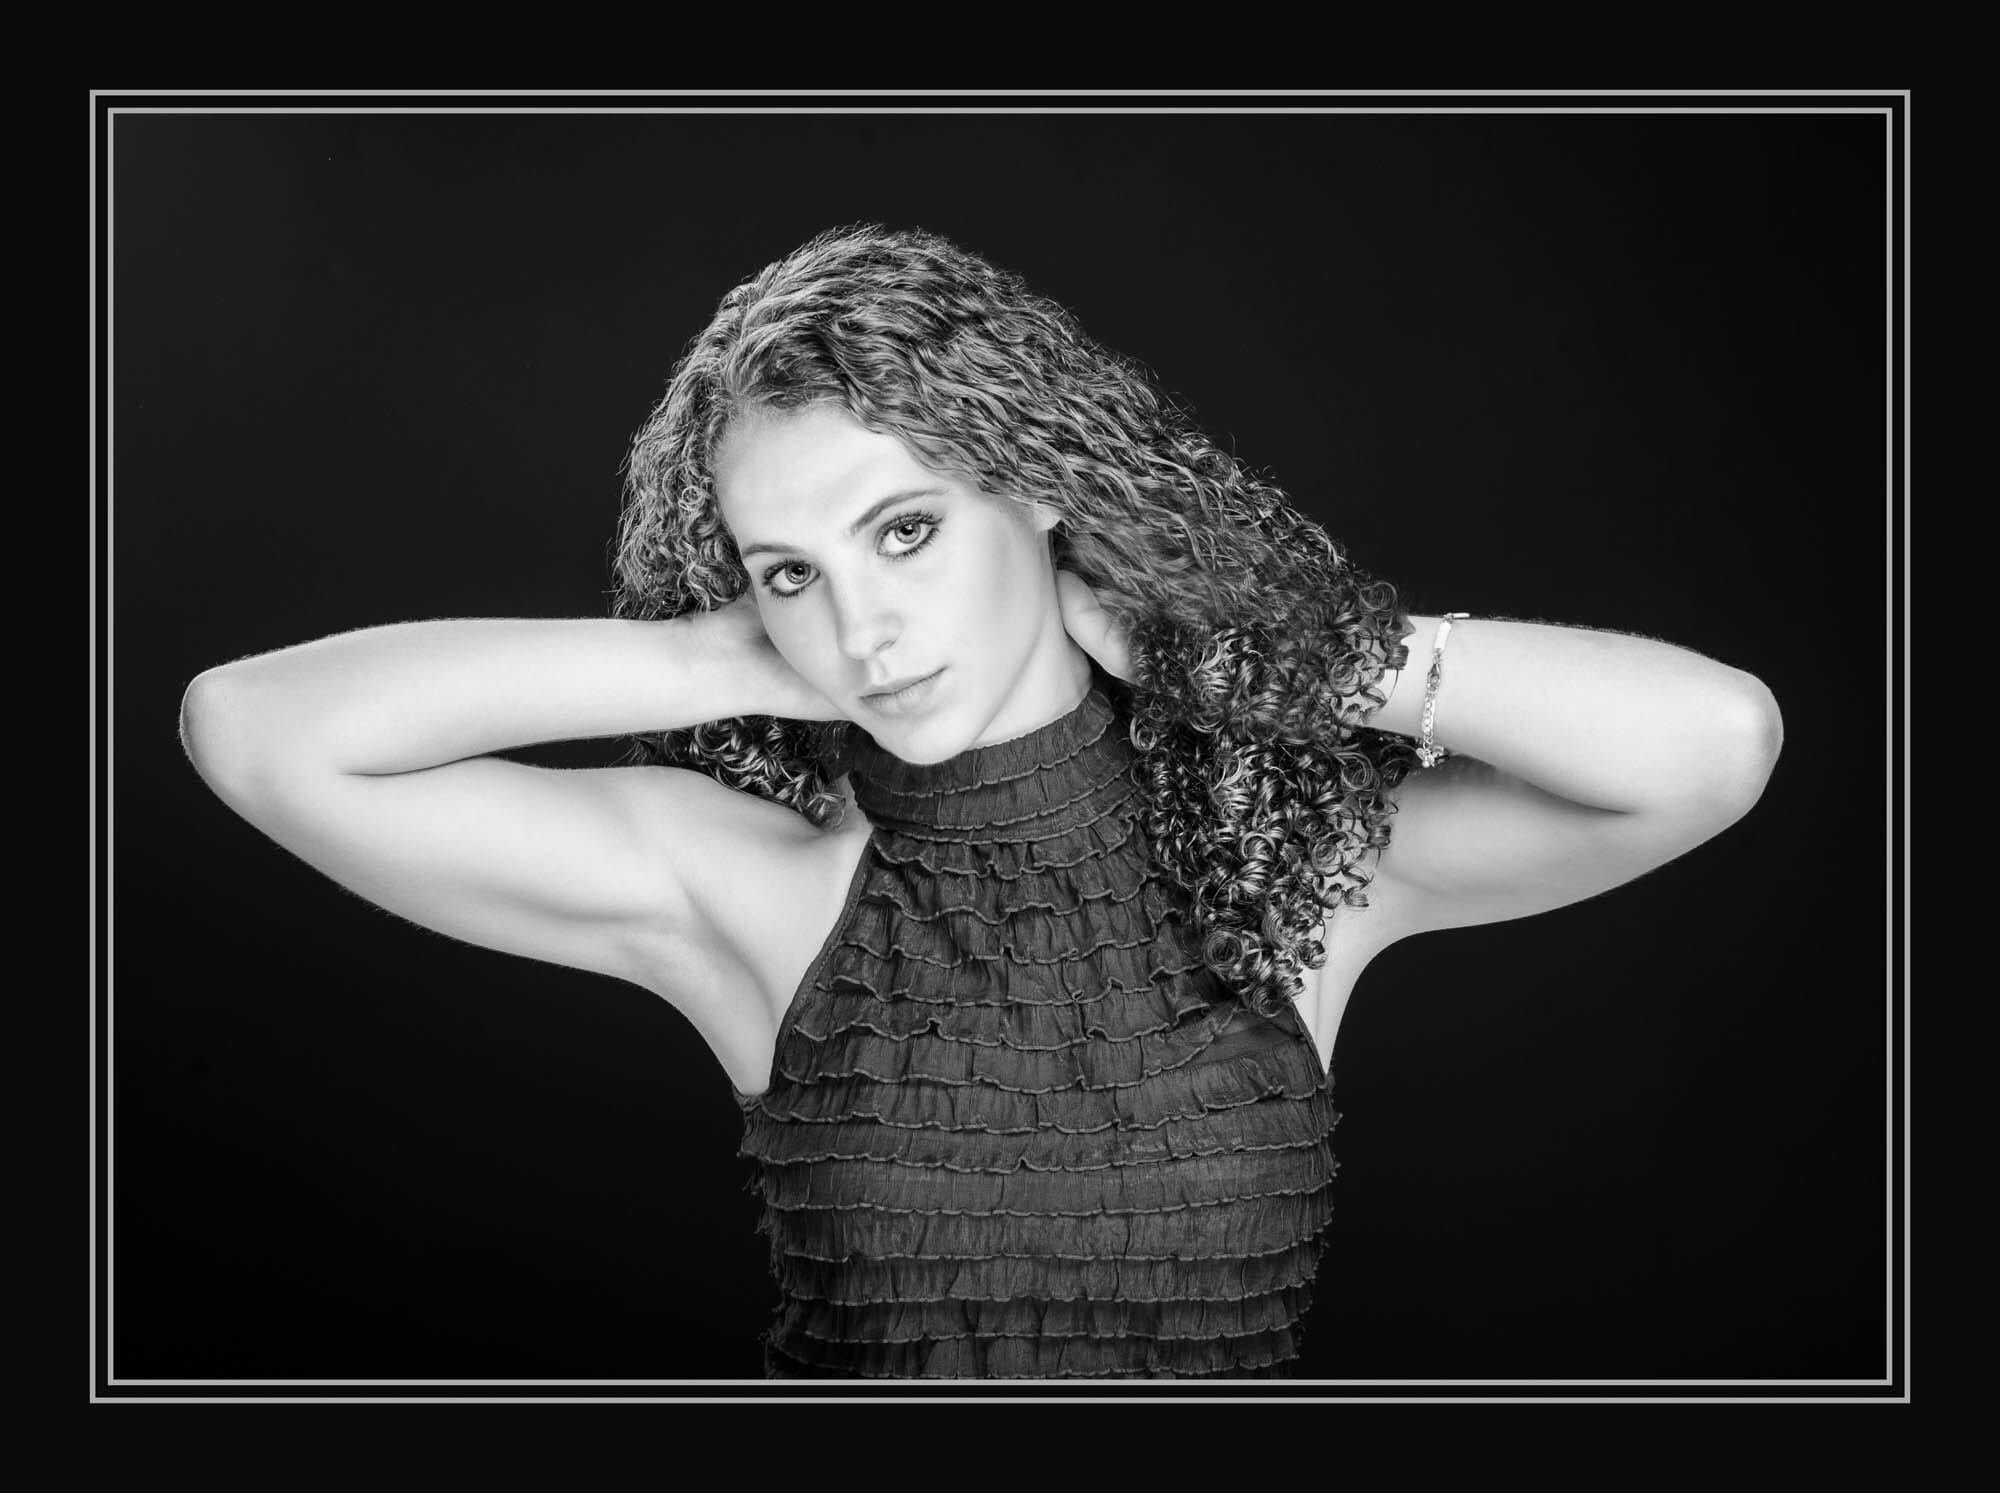 senior picture girl stunning black and white